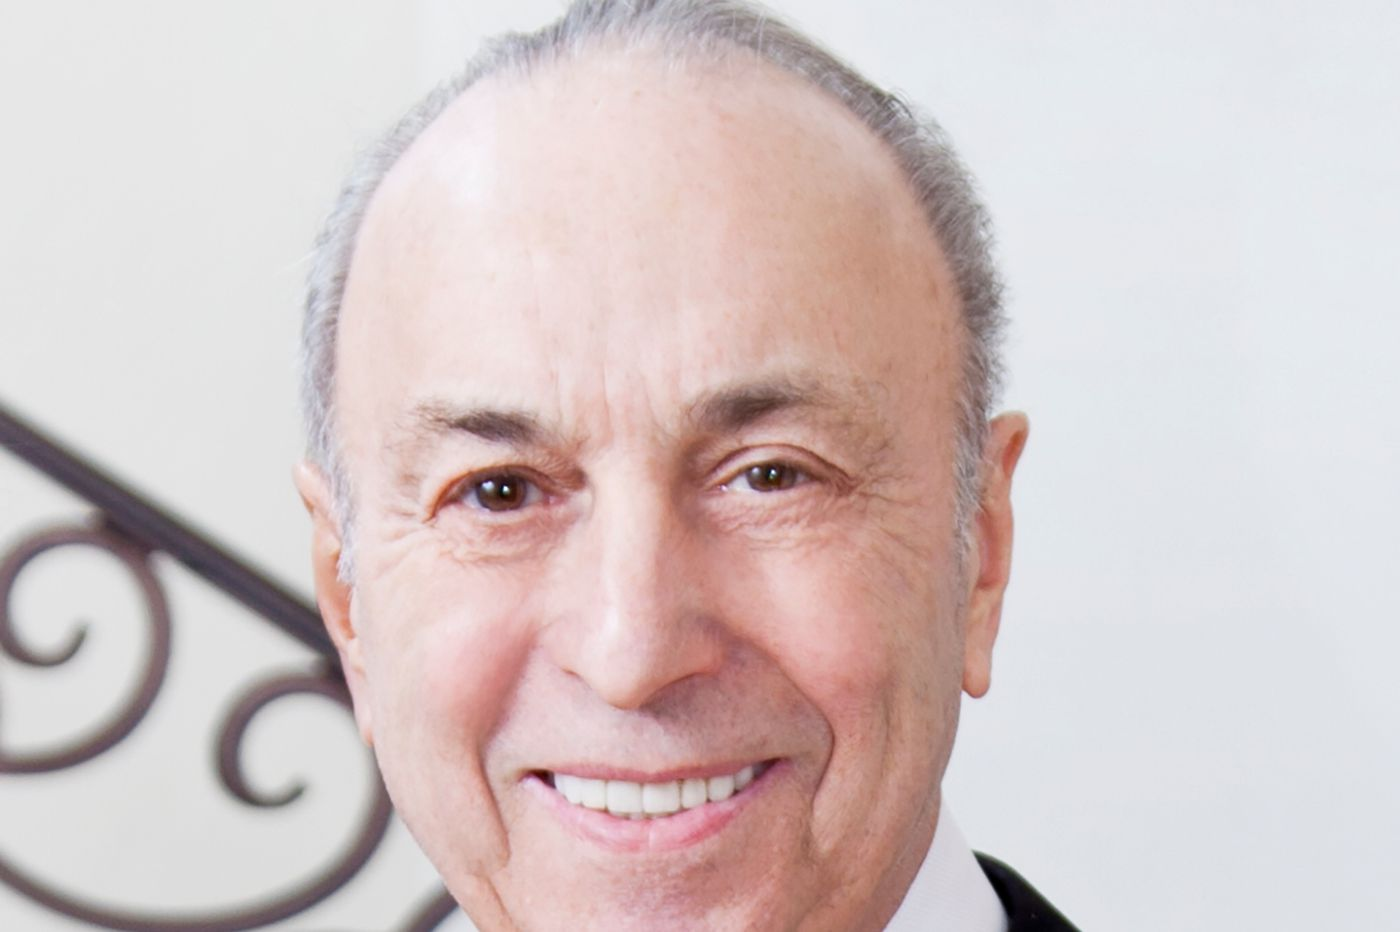 Bernard Spain, 86, a Philly-based retail entrepreneur who held the copyright for the smiley face